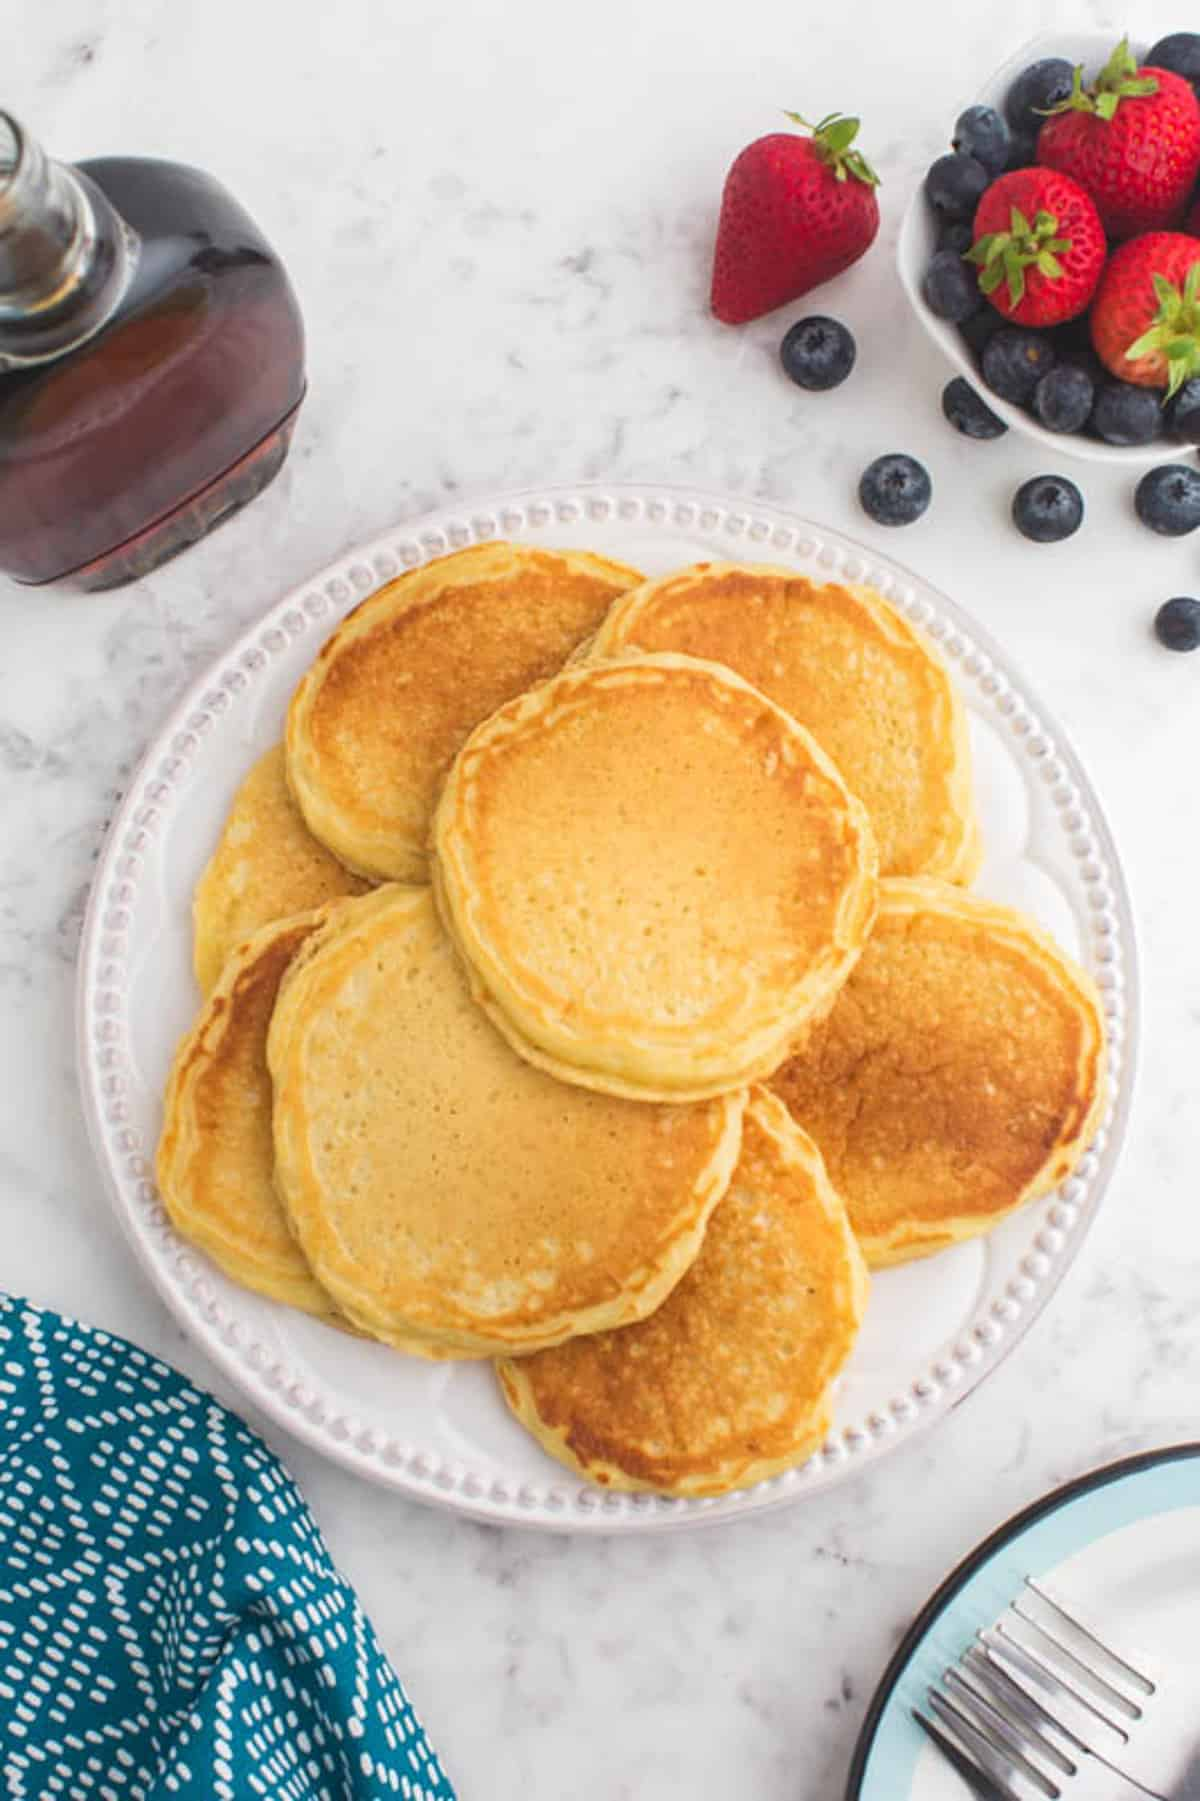 Pile of pancakes on a white plate. Berries and syrup also visible.